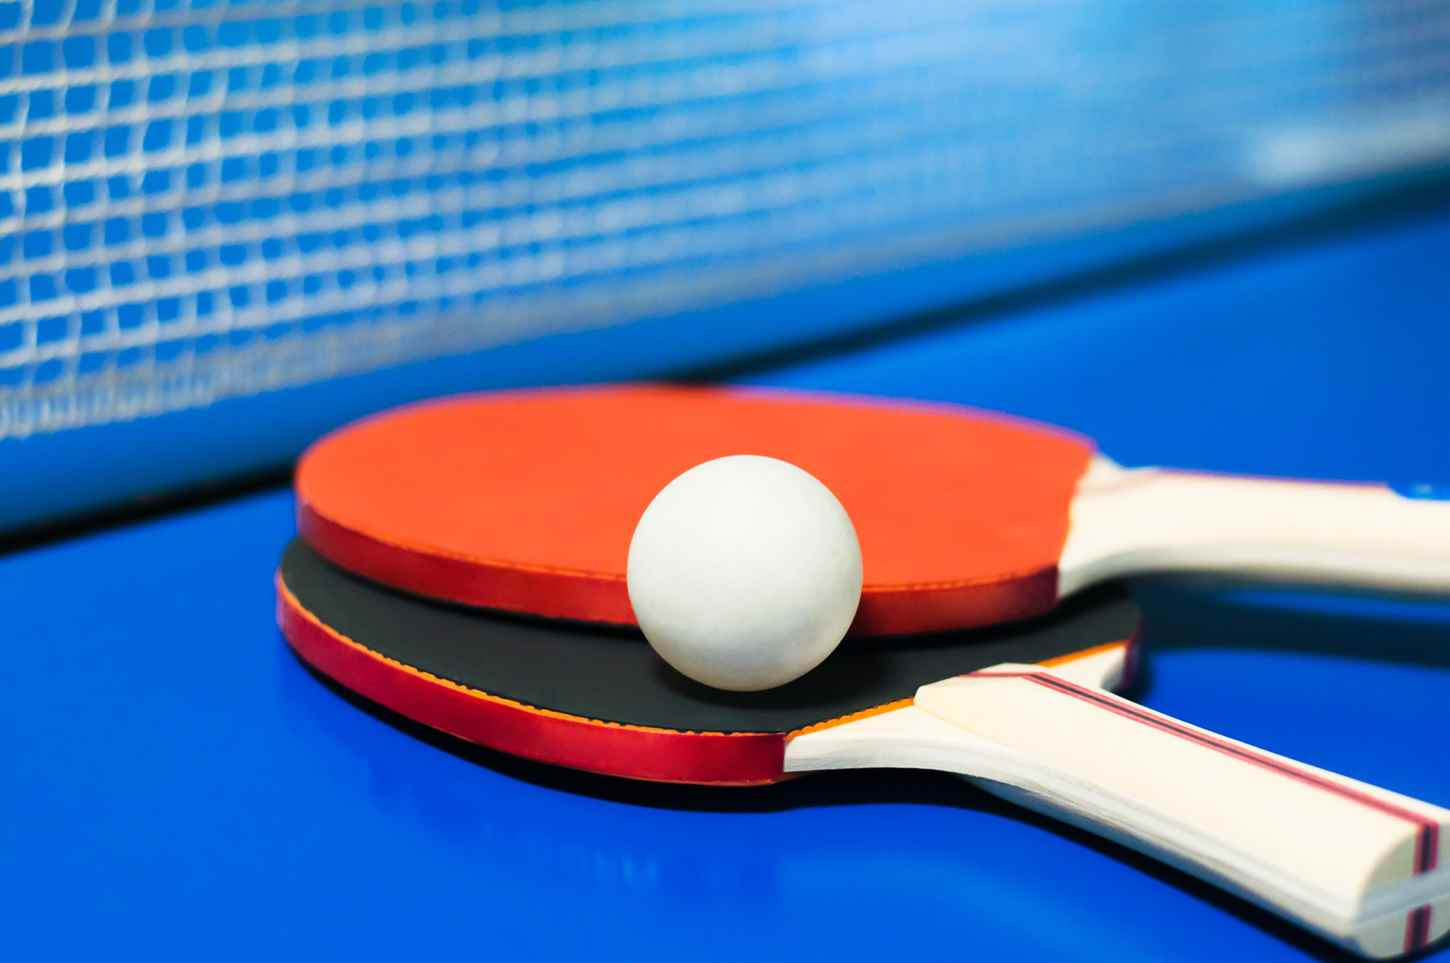 Best Table Tennis Bat for Beginners: Ideal Starter Paddles